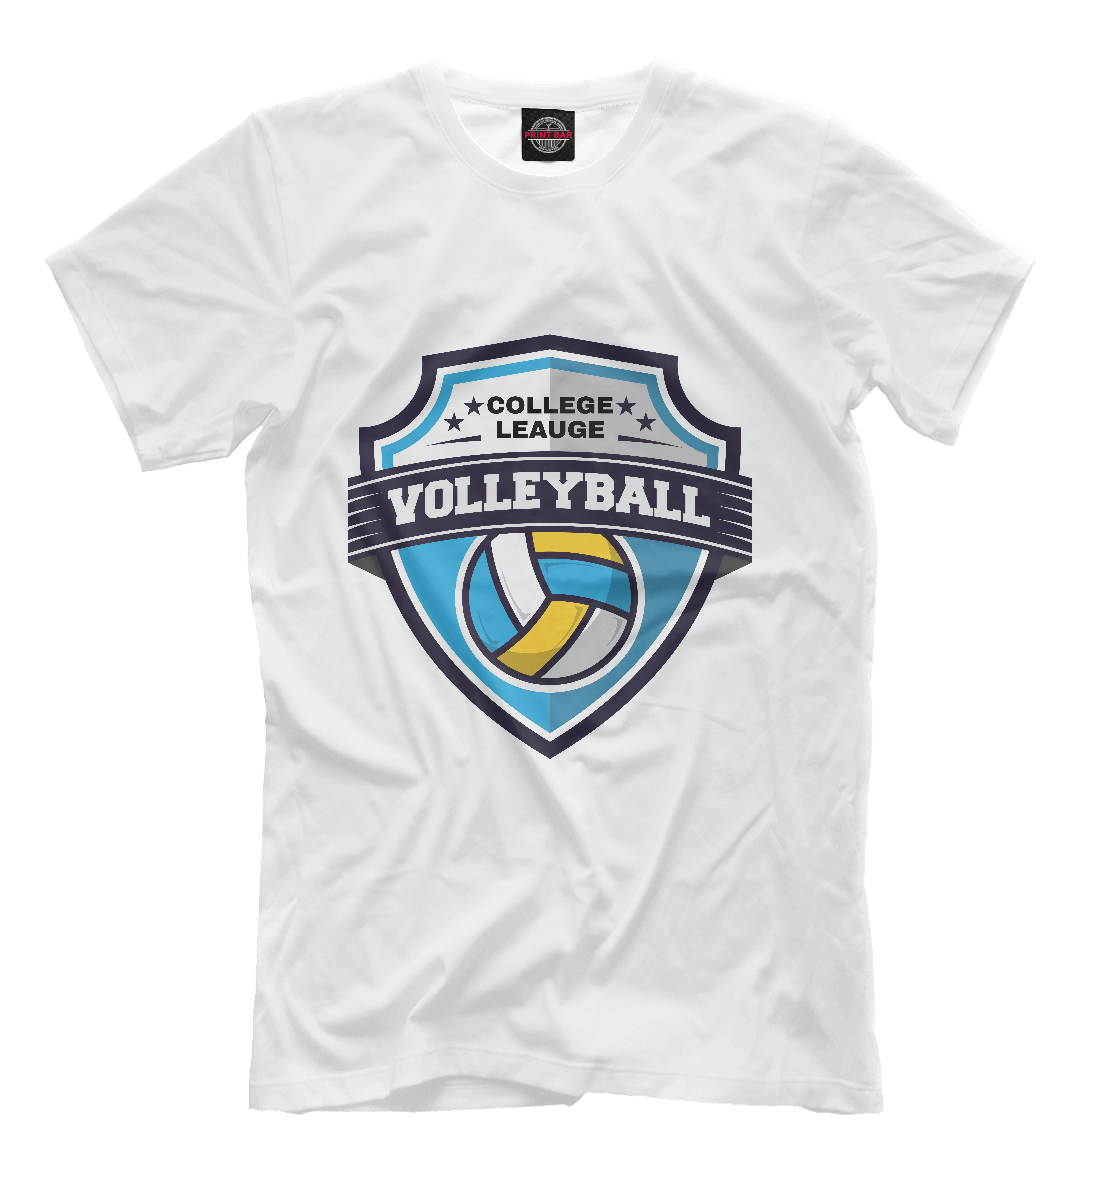 Купить Volleyball, Printbar, Футболки, VLB-745031-fut-2